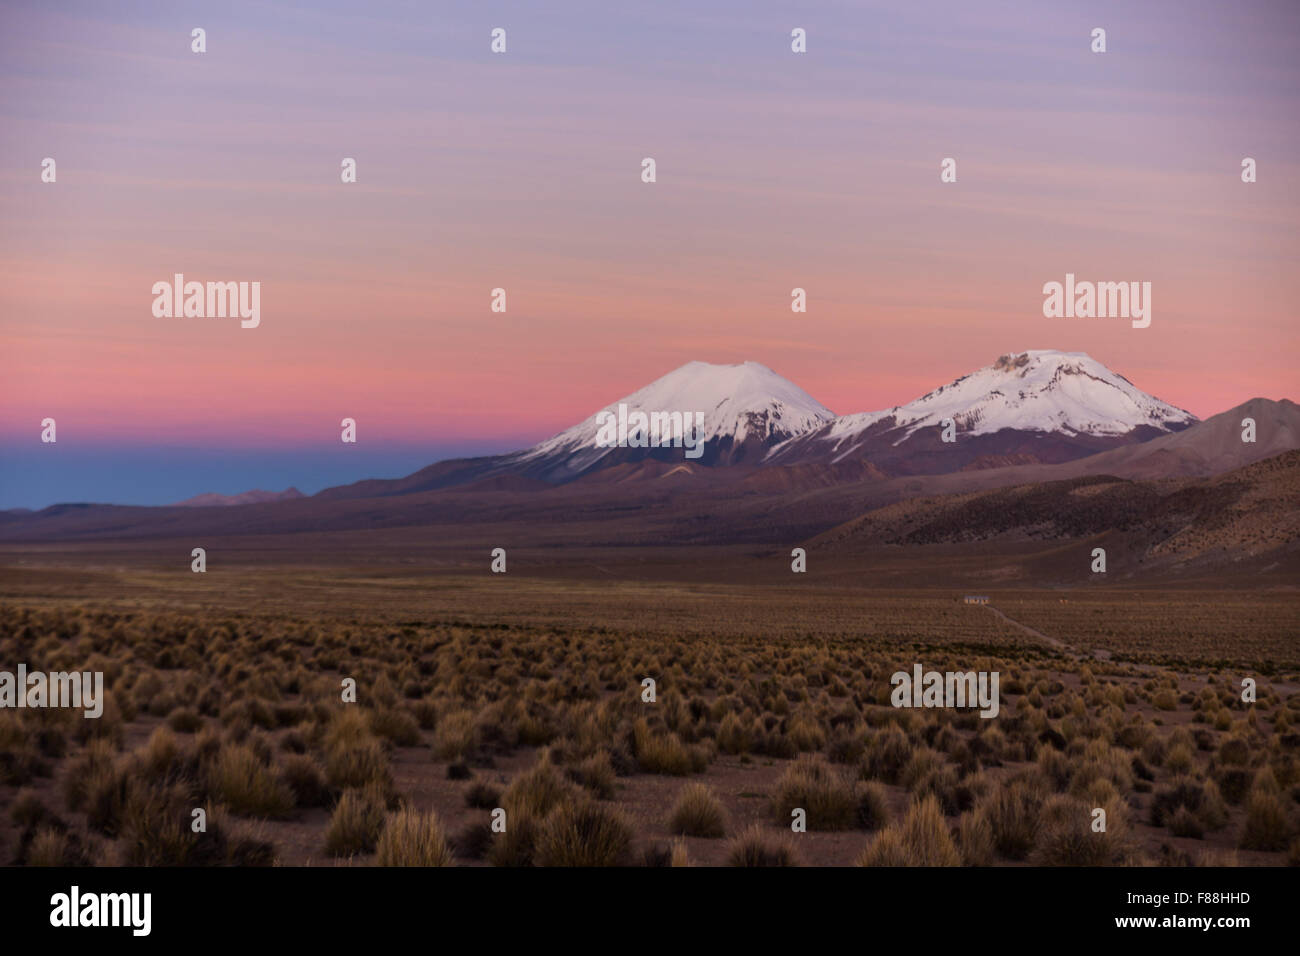 Sunset in Andes. Parinacota and Pomerade volcanos. High Andean landscape in the Andes. High Andean tundra landscape - Stock Image